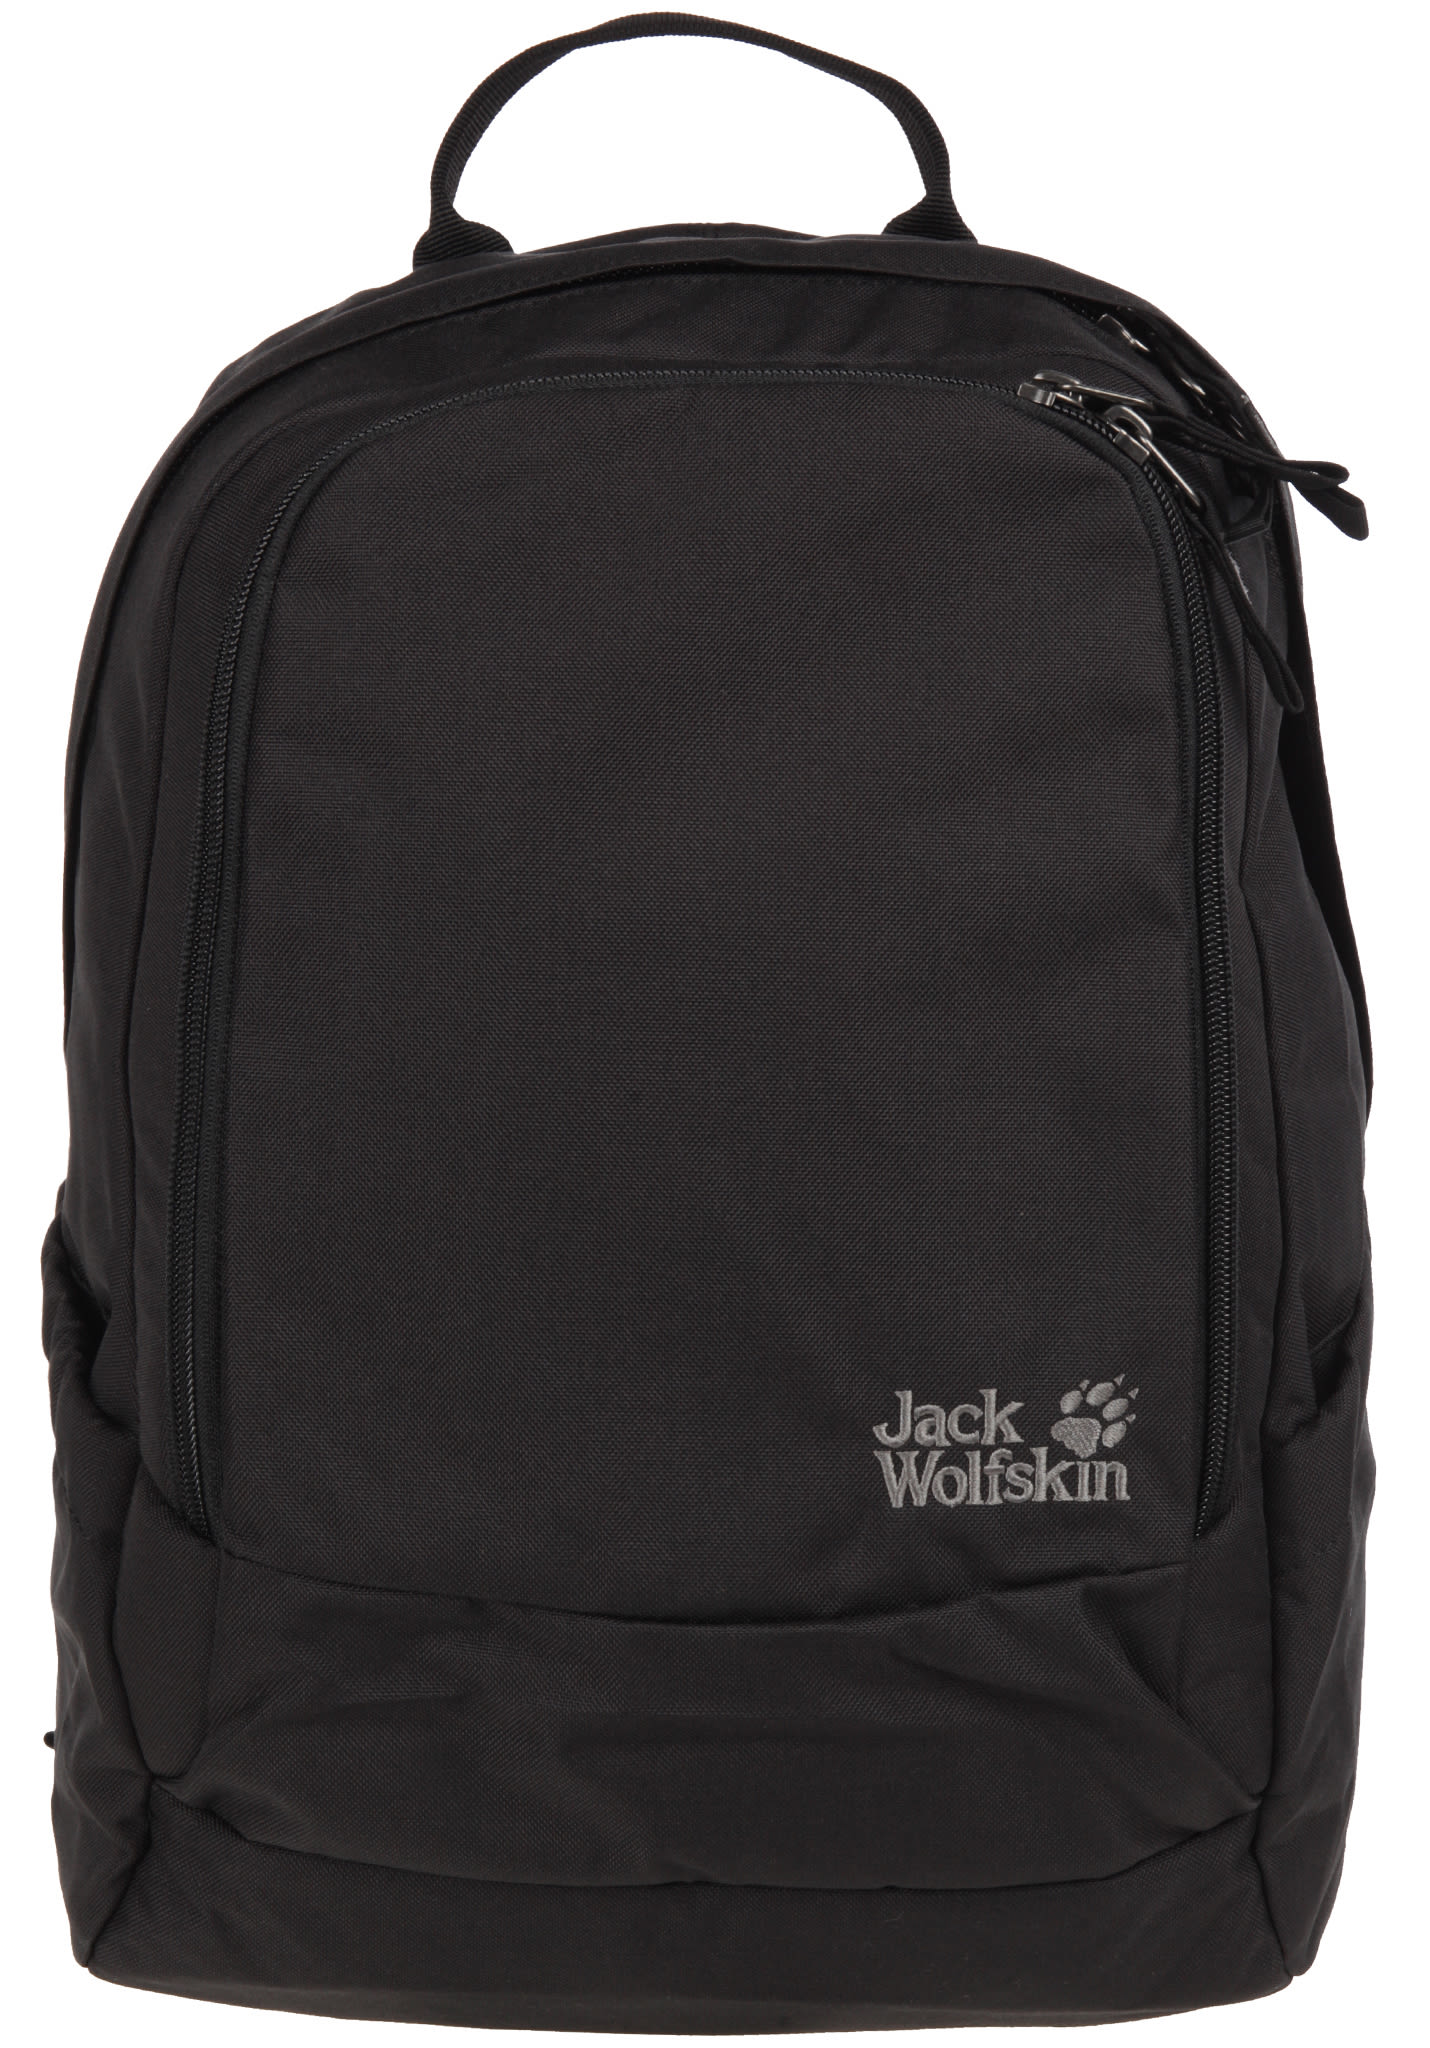 Jack Wolfskin Black Perfect Day Backpack